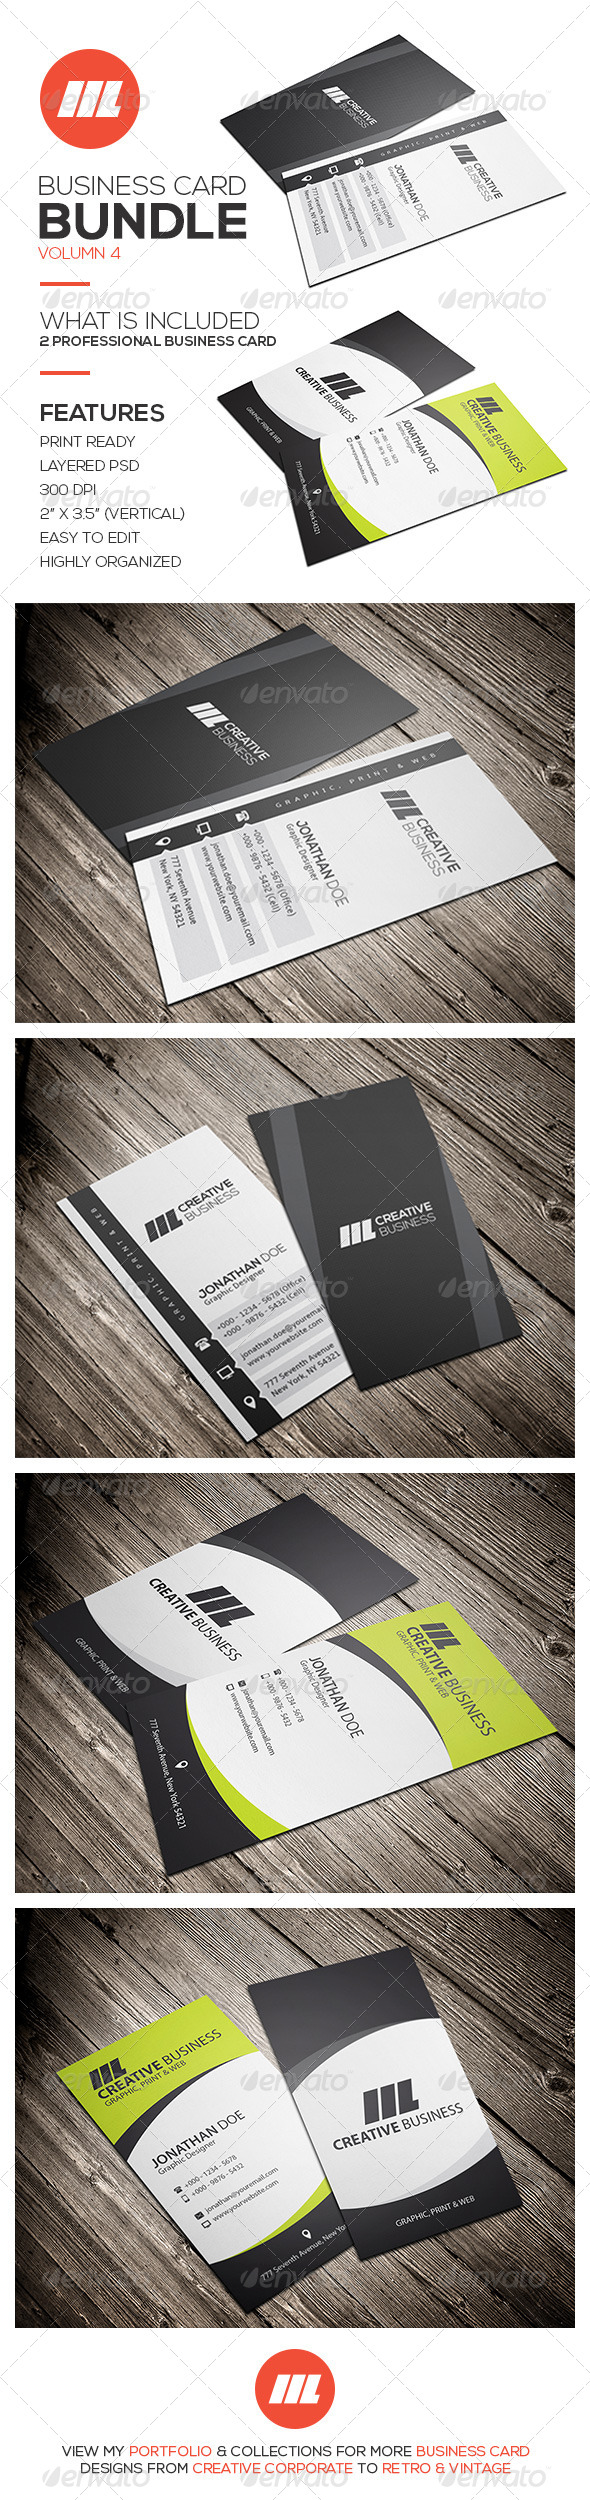 GraphicRiver Business Card Bundle Vol 4 8747004